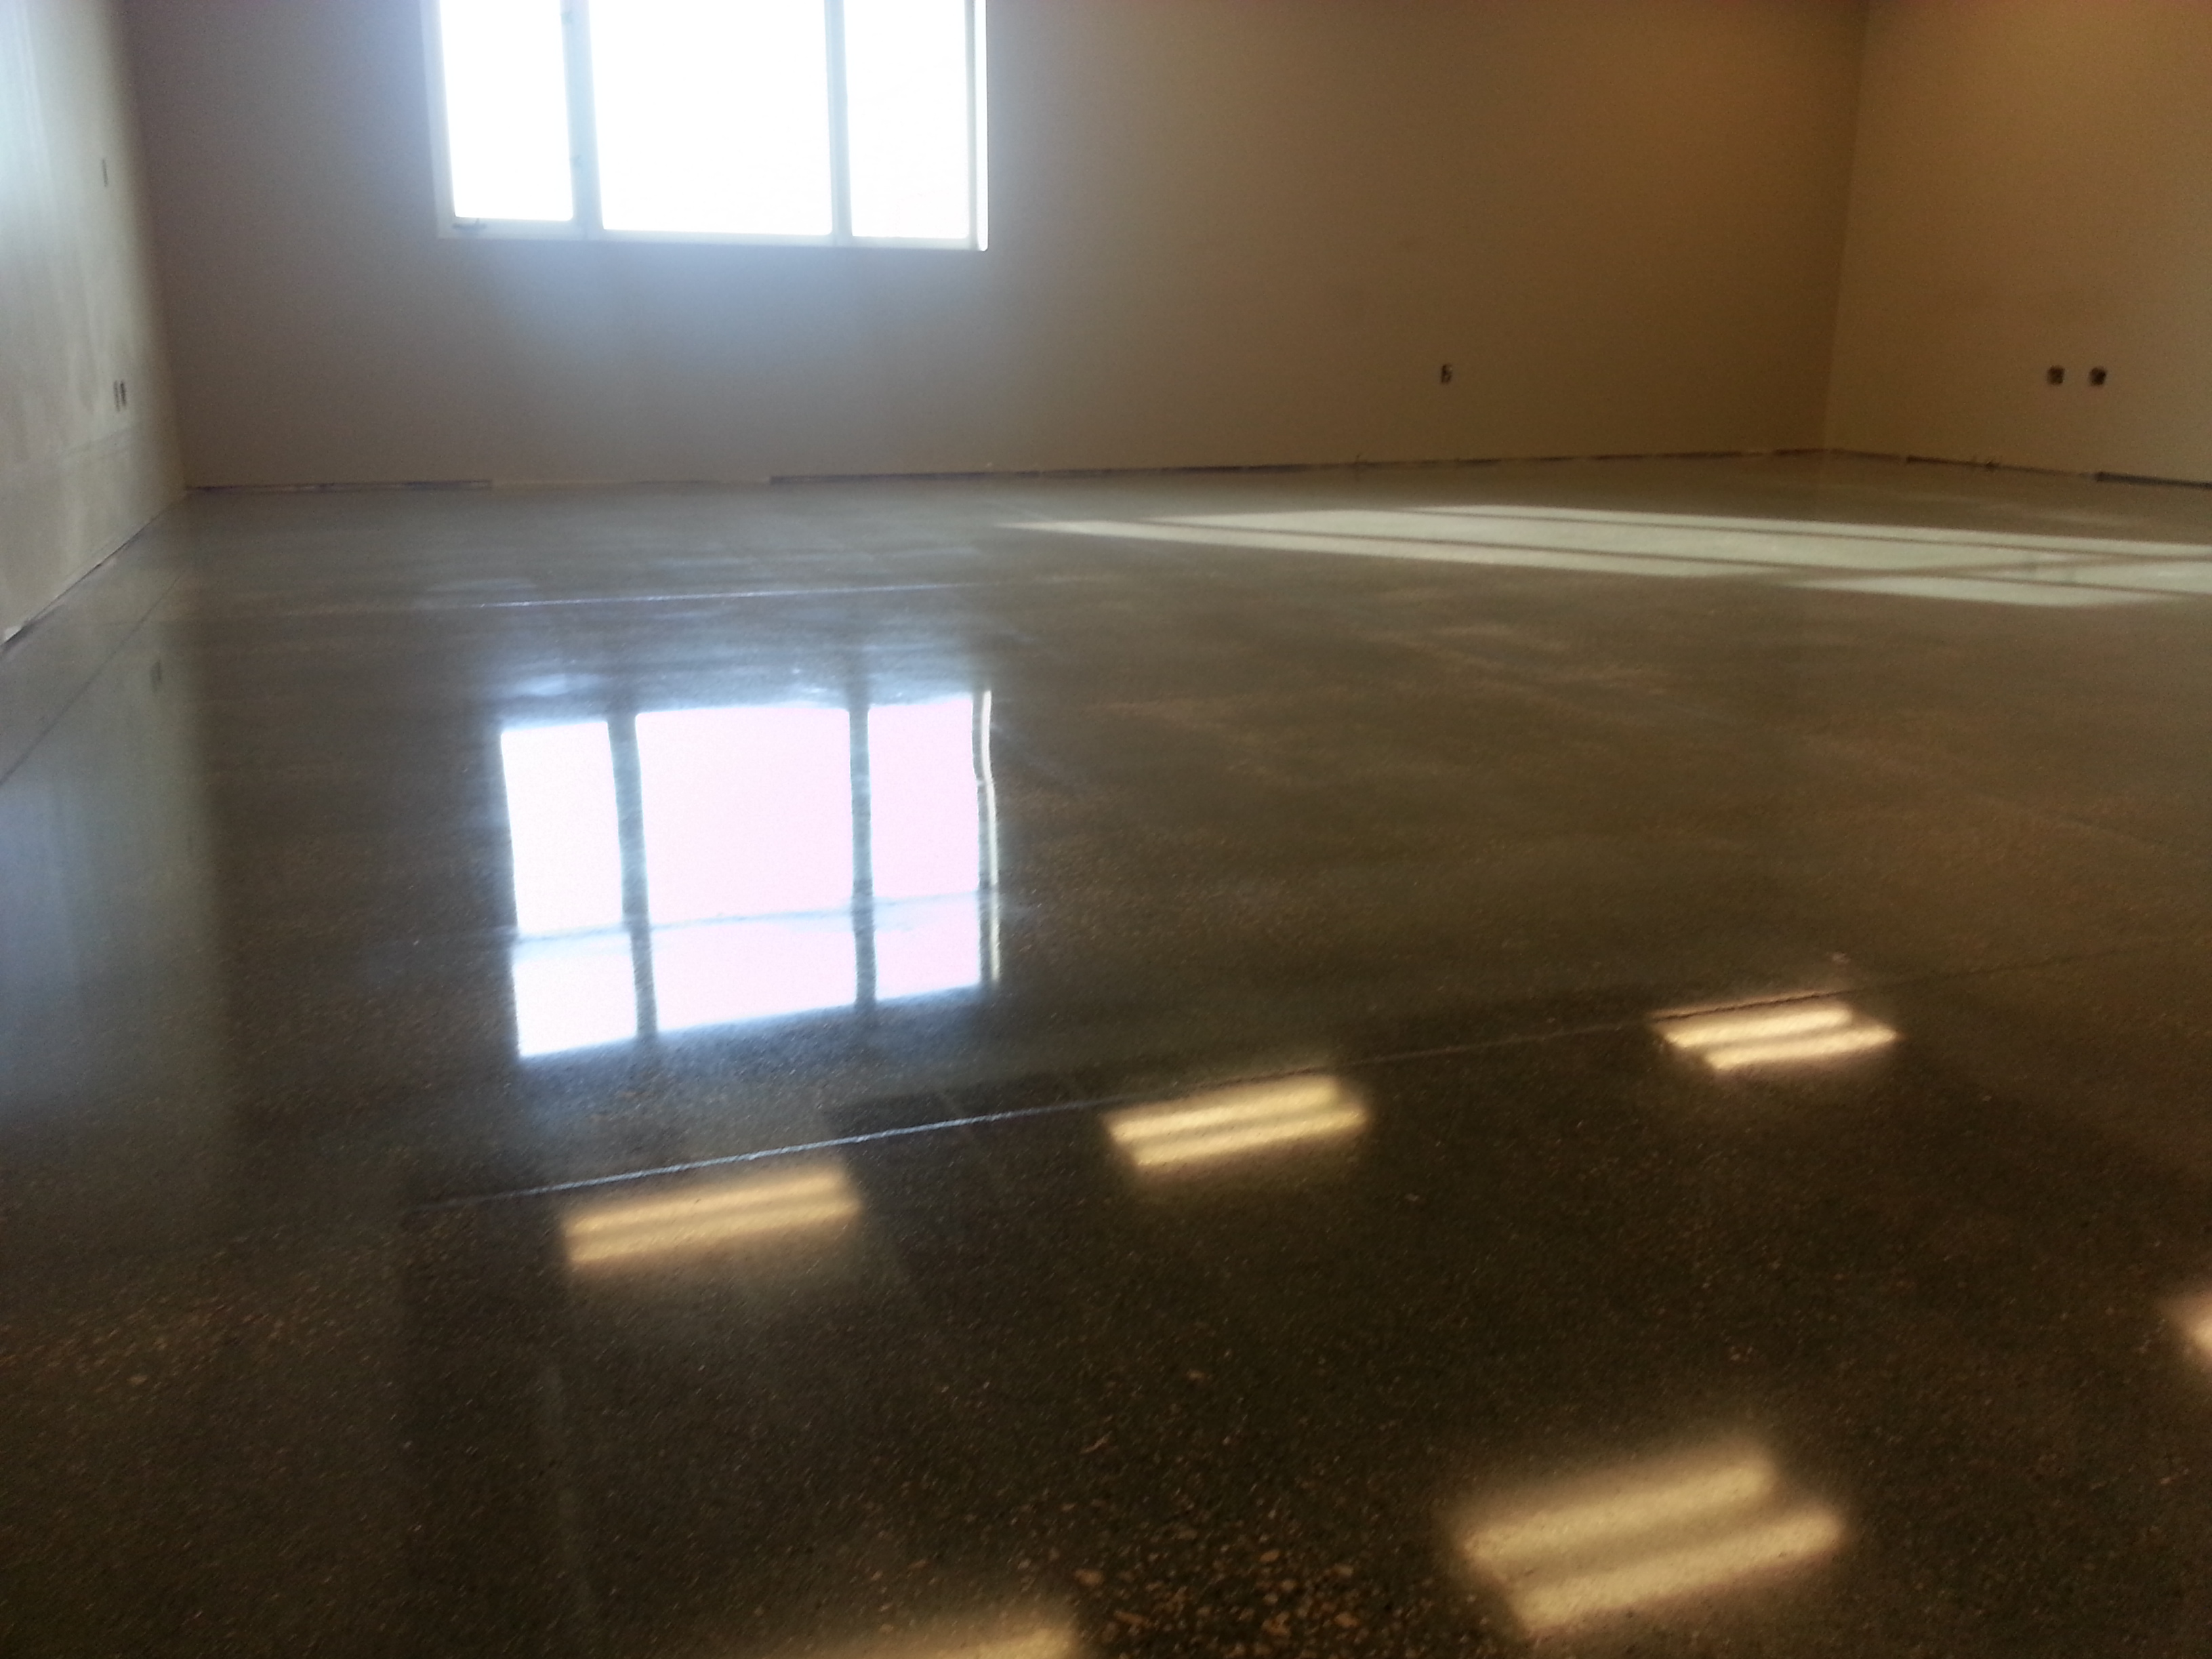 Medium to High Gloss floor sheen at an institutional building.